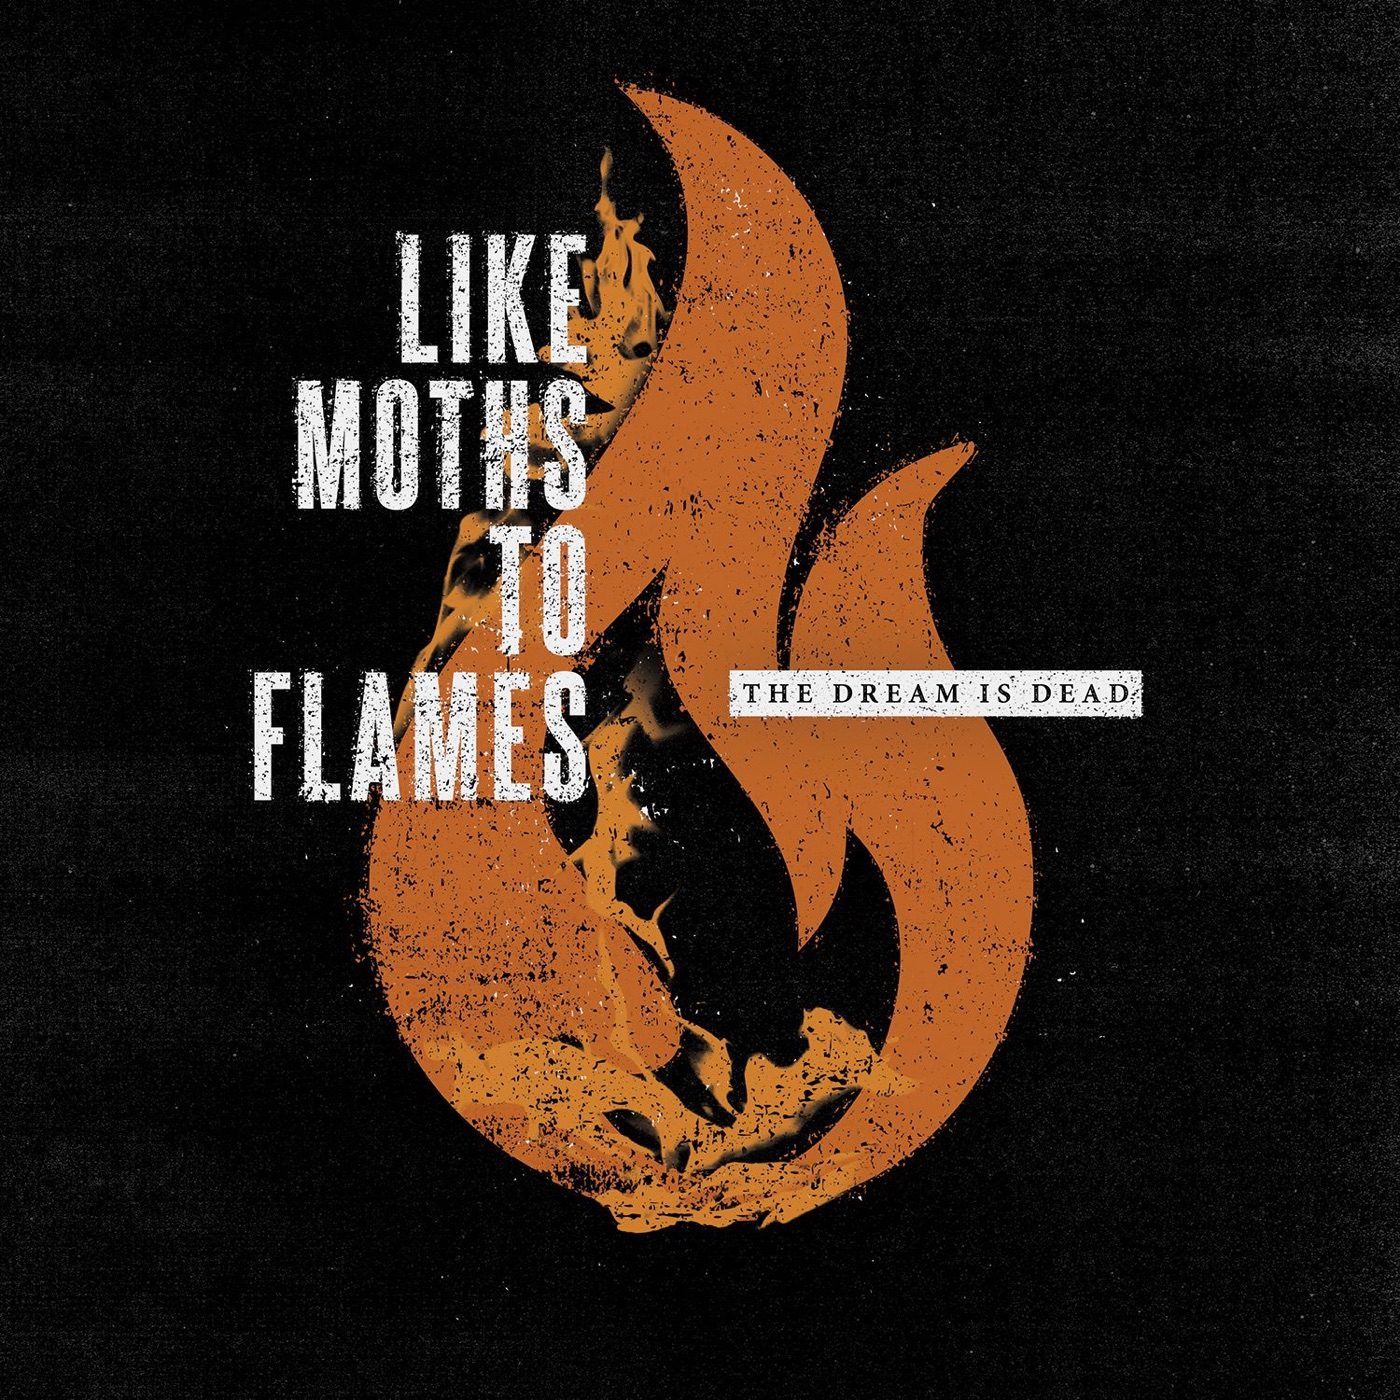 Like Moths to Flames - The Dream is Dead [single] (2015)